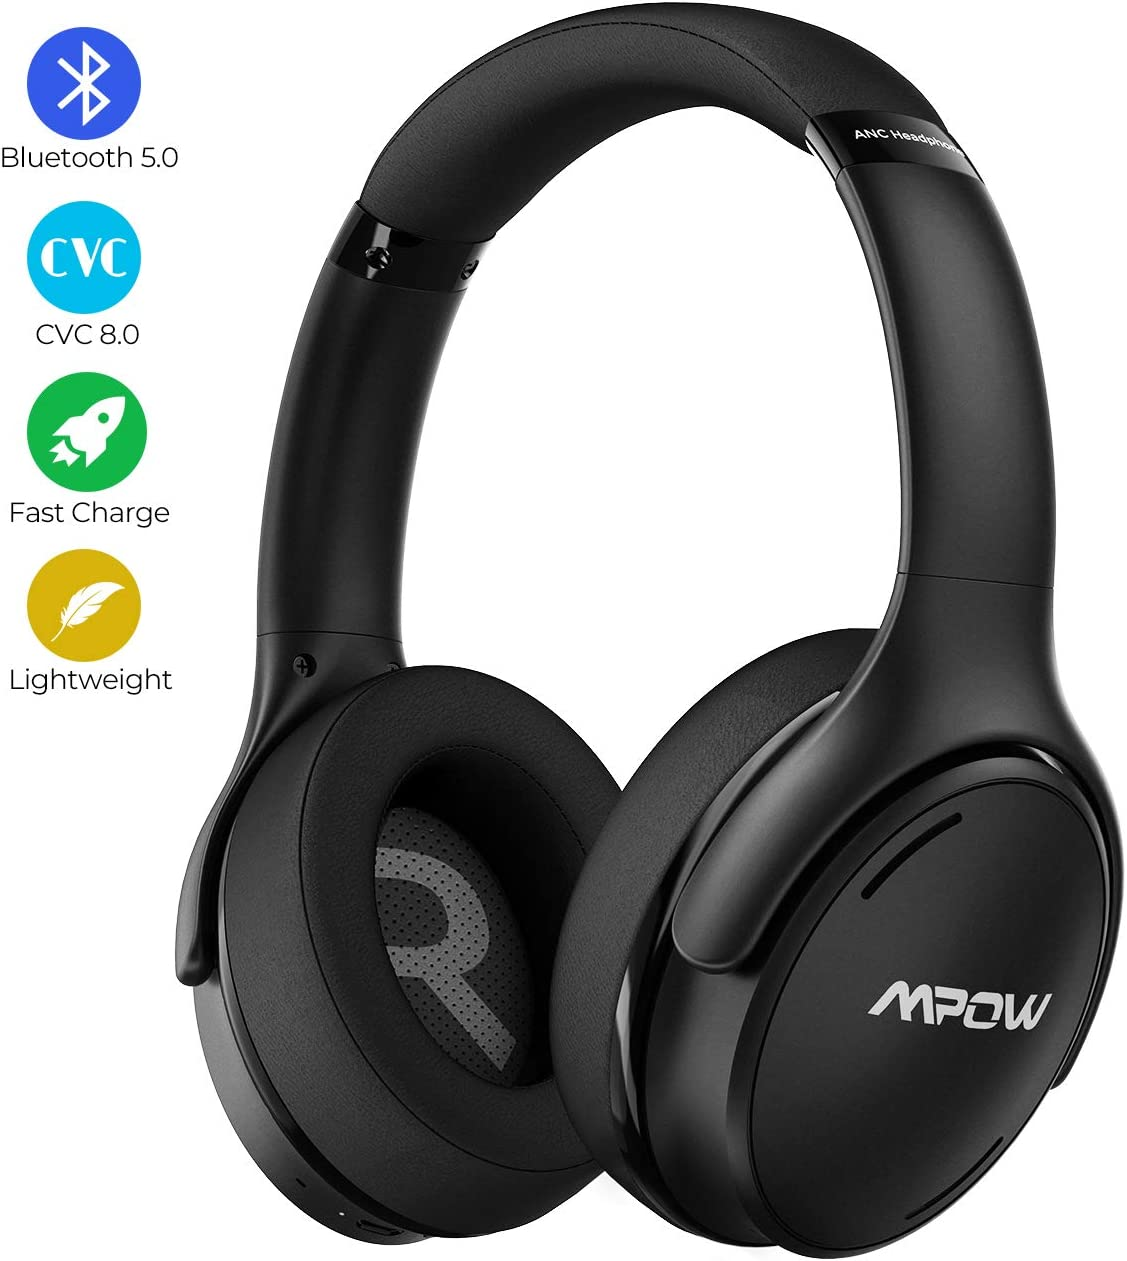 Mpow H19 IPO Active Noise Cancelling Headphones, Bluetooth 5.0 Wireless Headphones with CVC 8.0 Mic, Hi-Fi Stereo Deep Bass, Rapid Charge 35H Playtime, Memory-Protein Earpads Over Ear for Travel Work